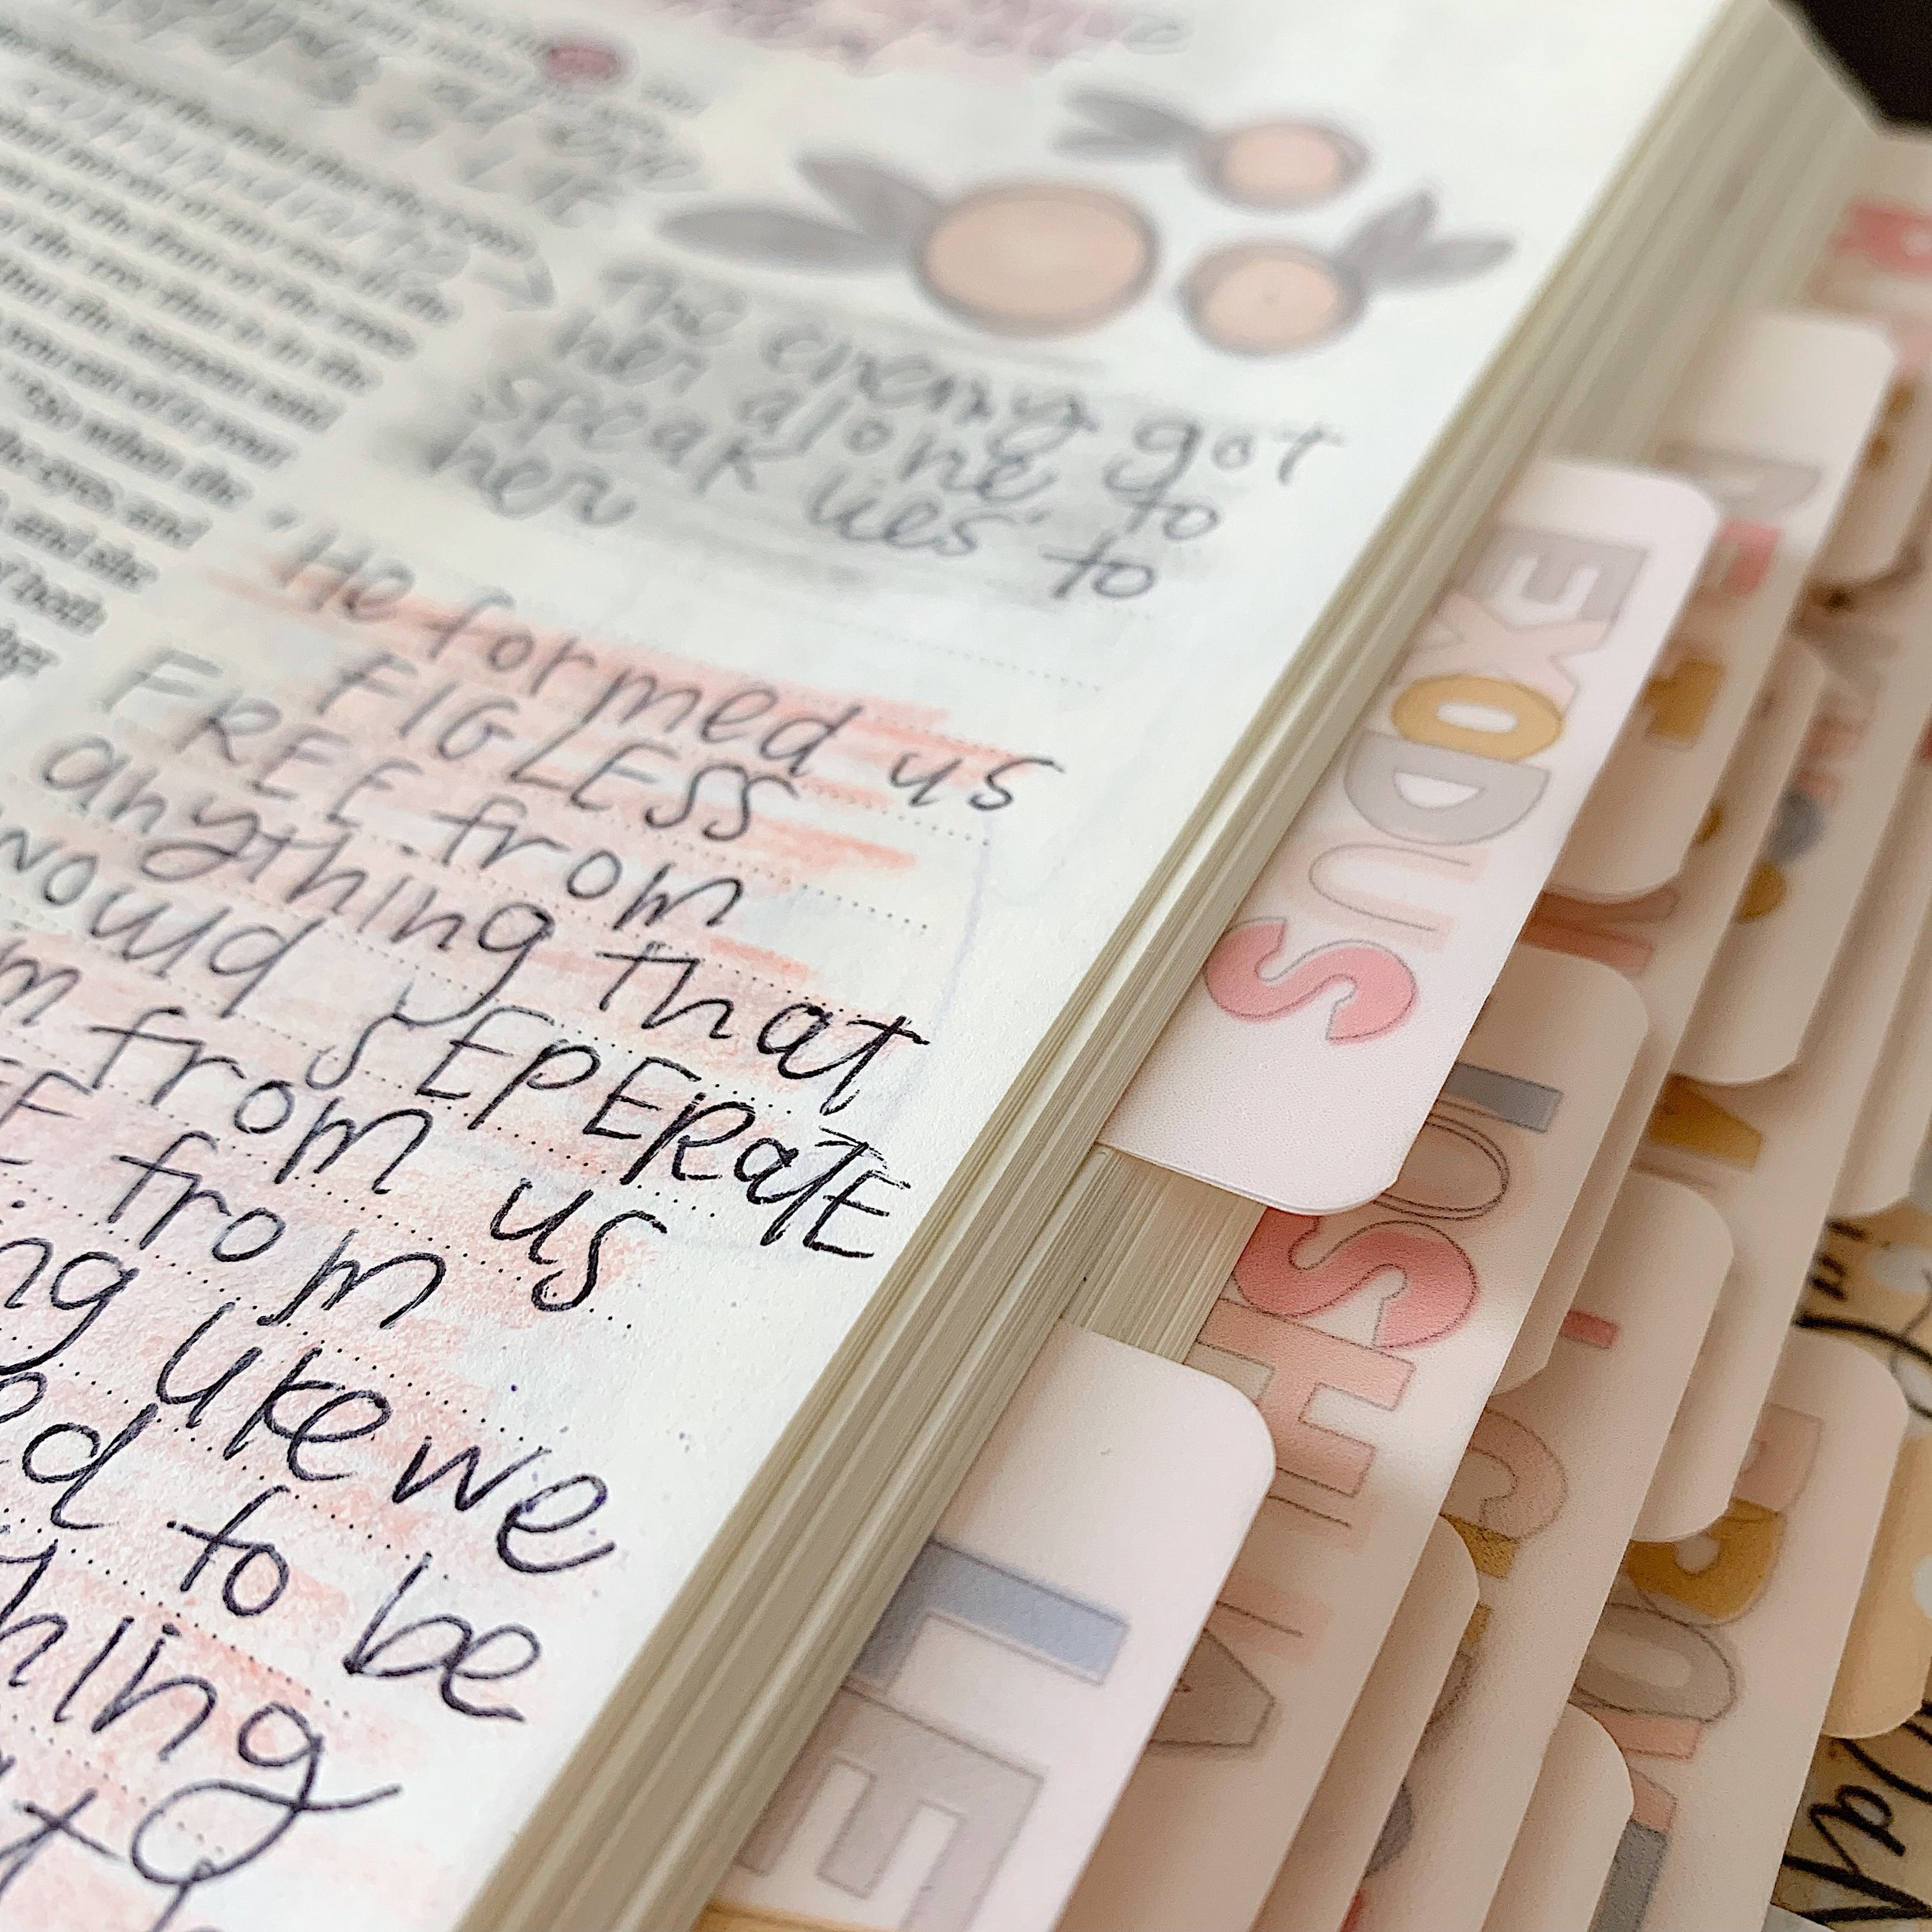 gET IN THE WORD - I believe in different seasons it is hard to get in the Word, my prayer is that these tabs would encourage you to open your Bible more, because I believe when you do, you will fall in love with Jesus all over again.